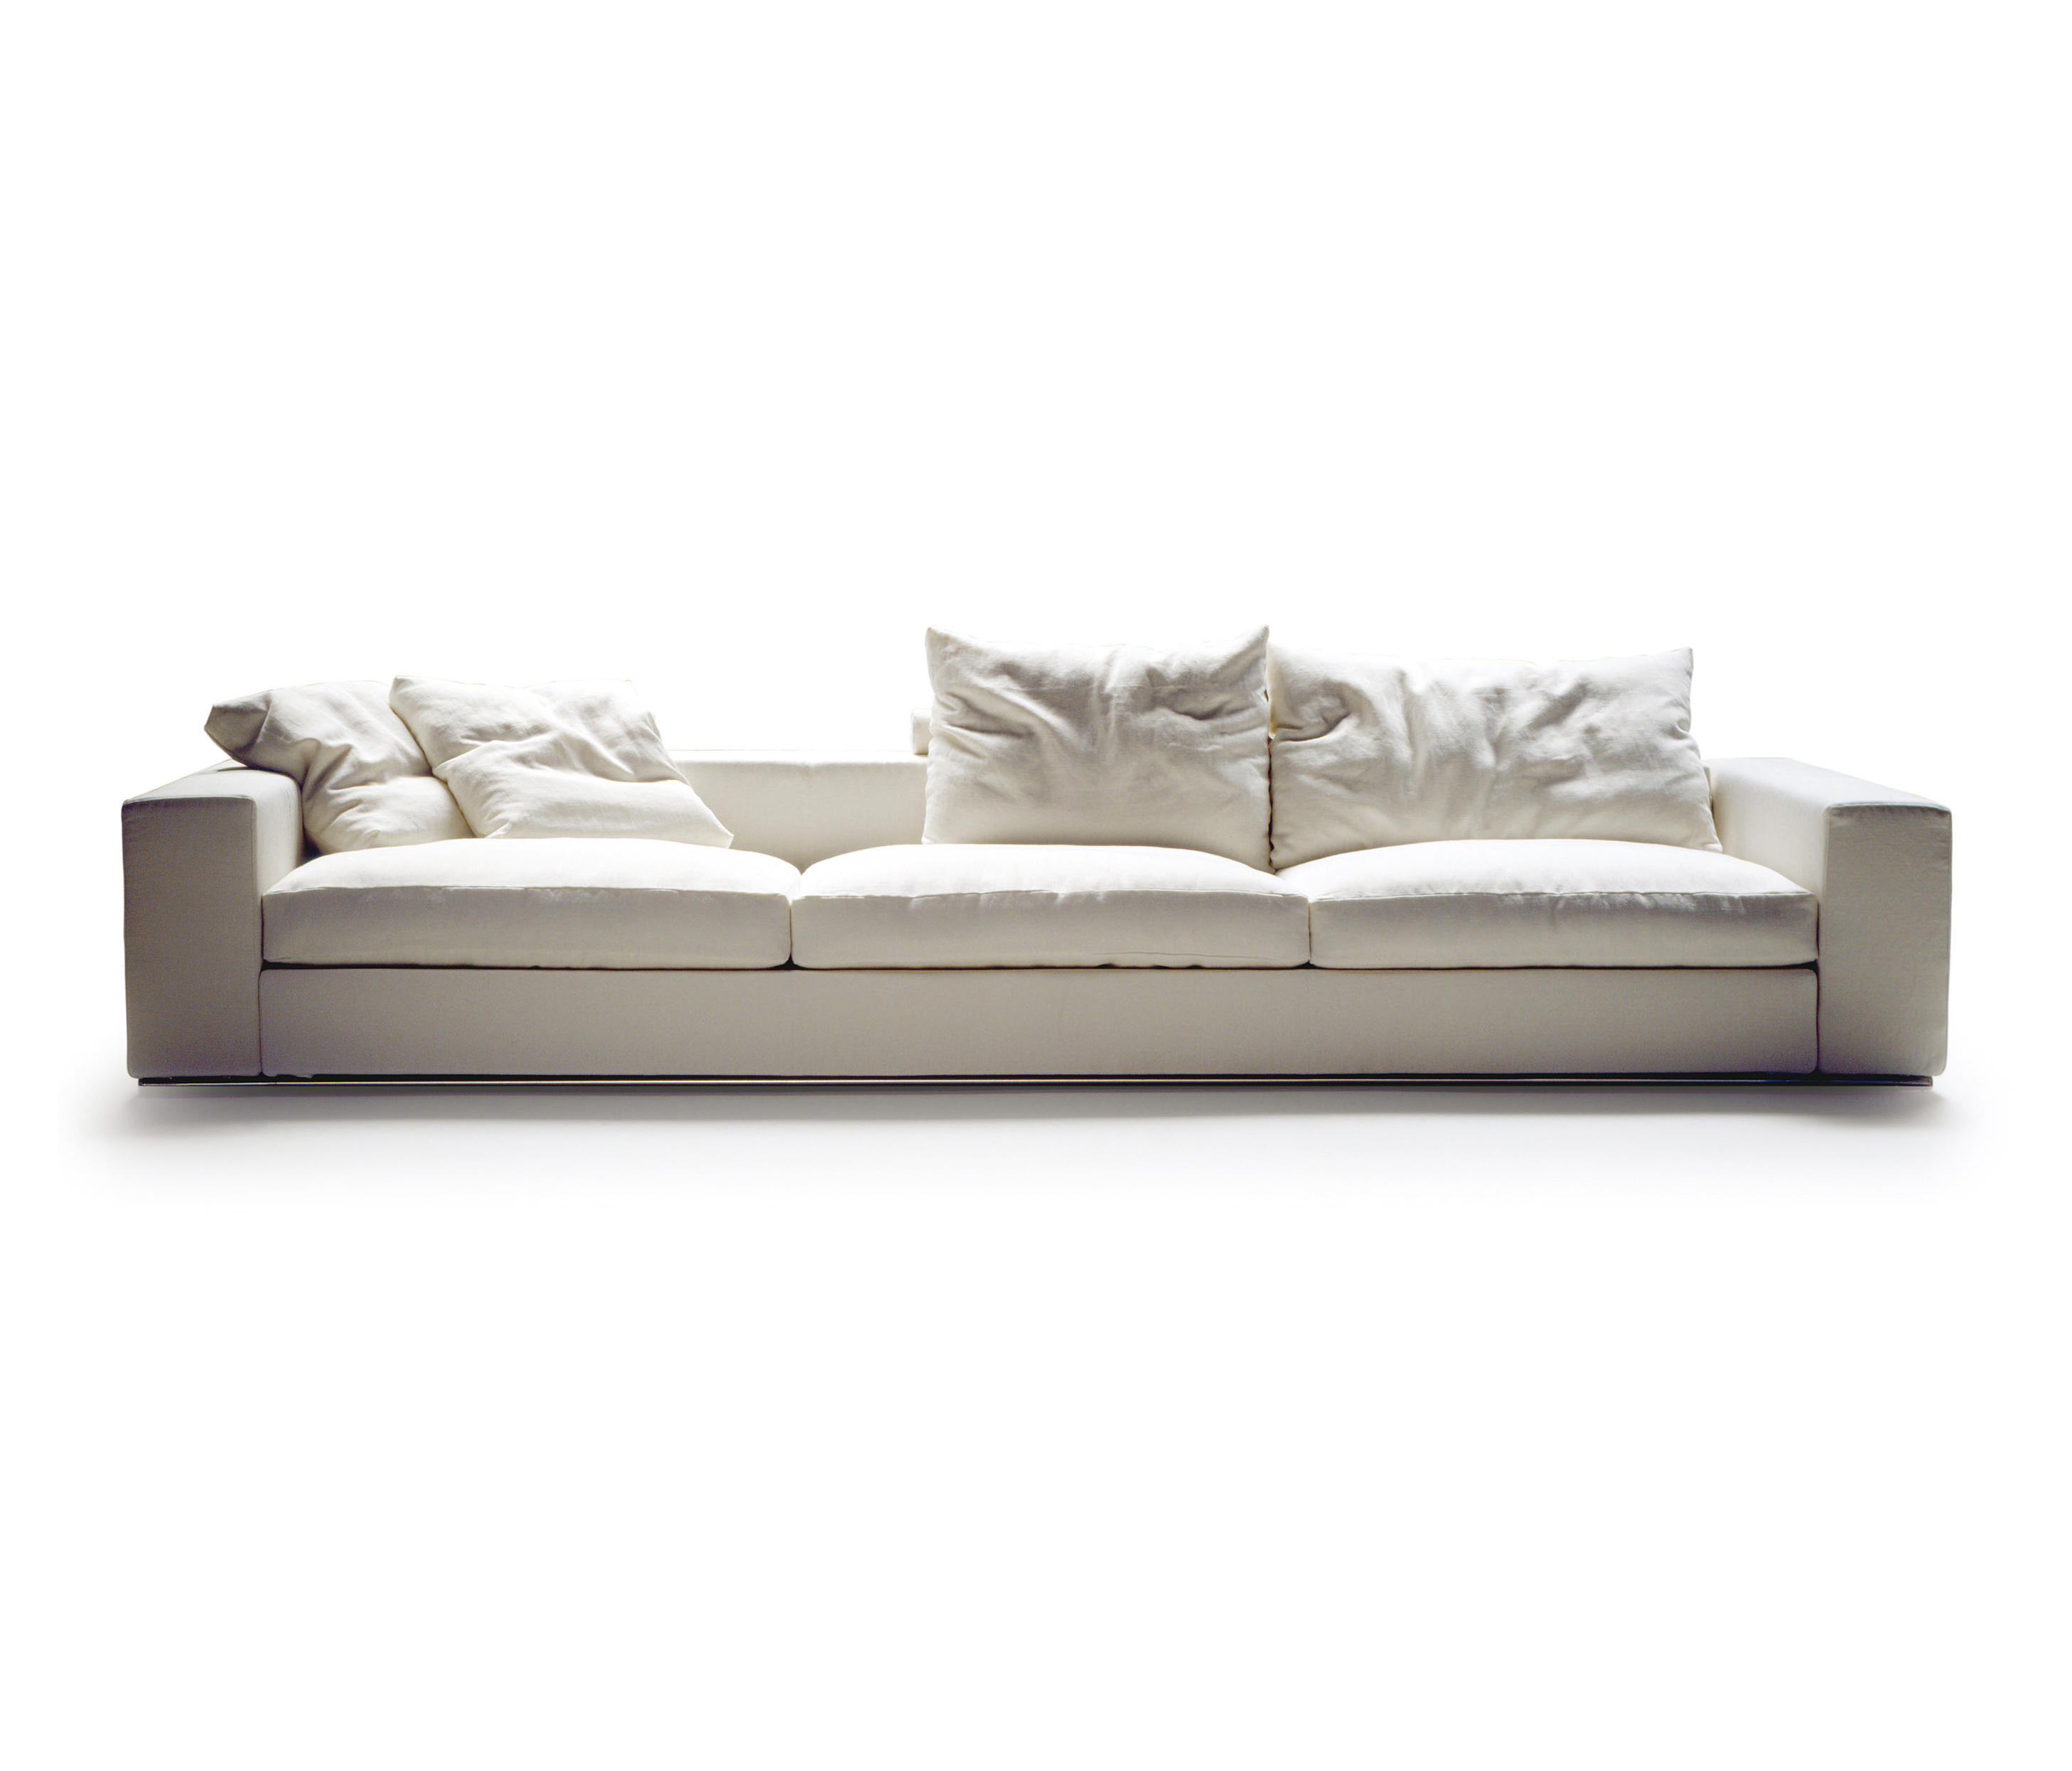 GROUNDPIECE - Sofas von Flexform | Architonic